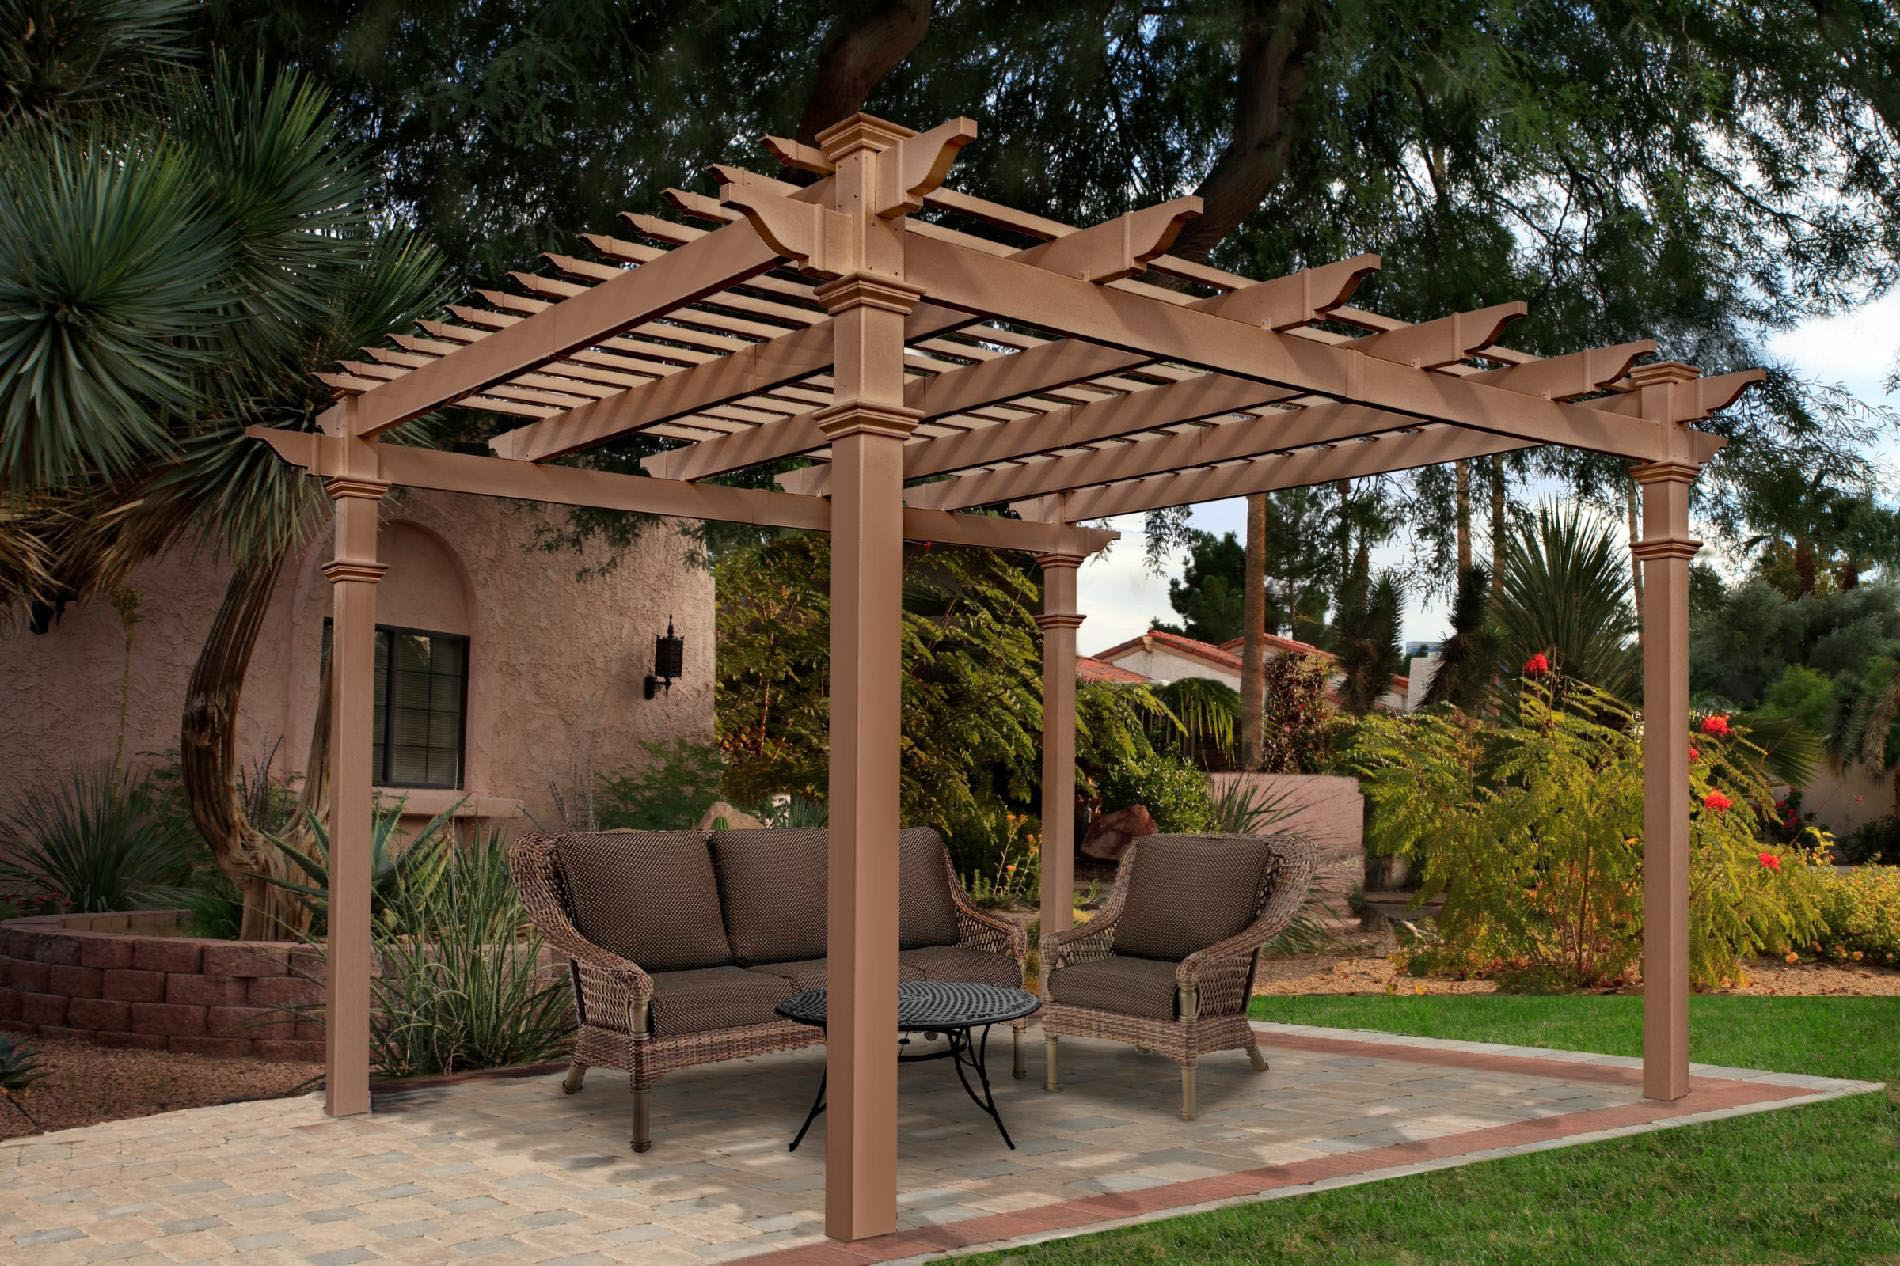 Cedar Gazebo Kits Costco